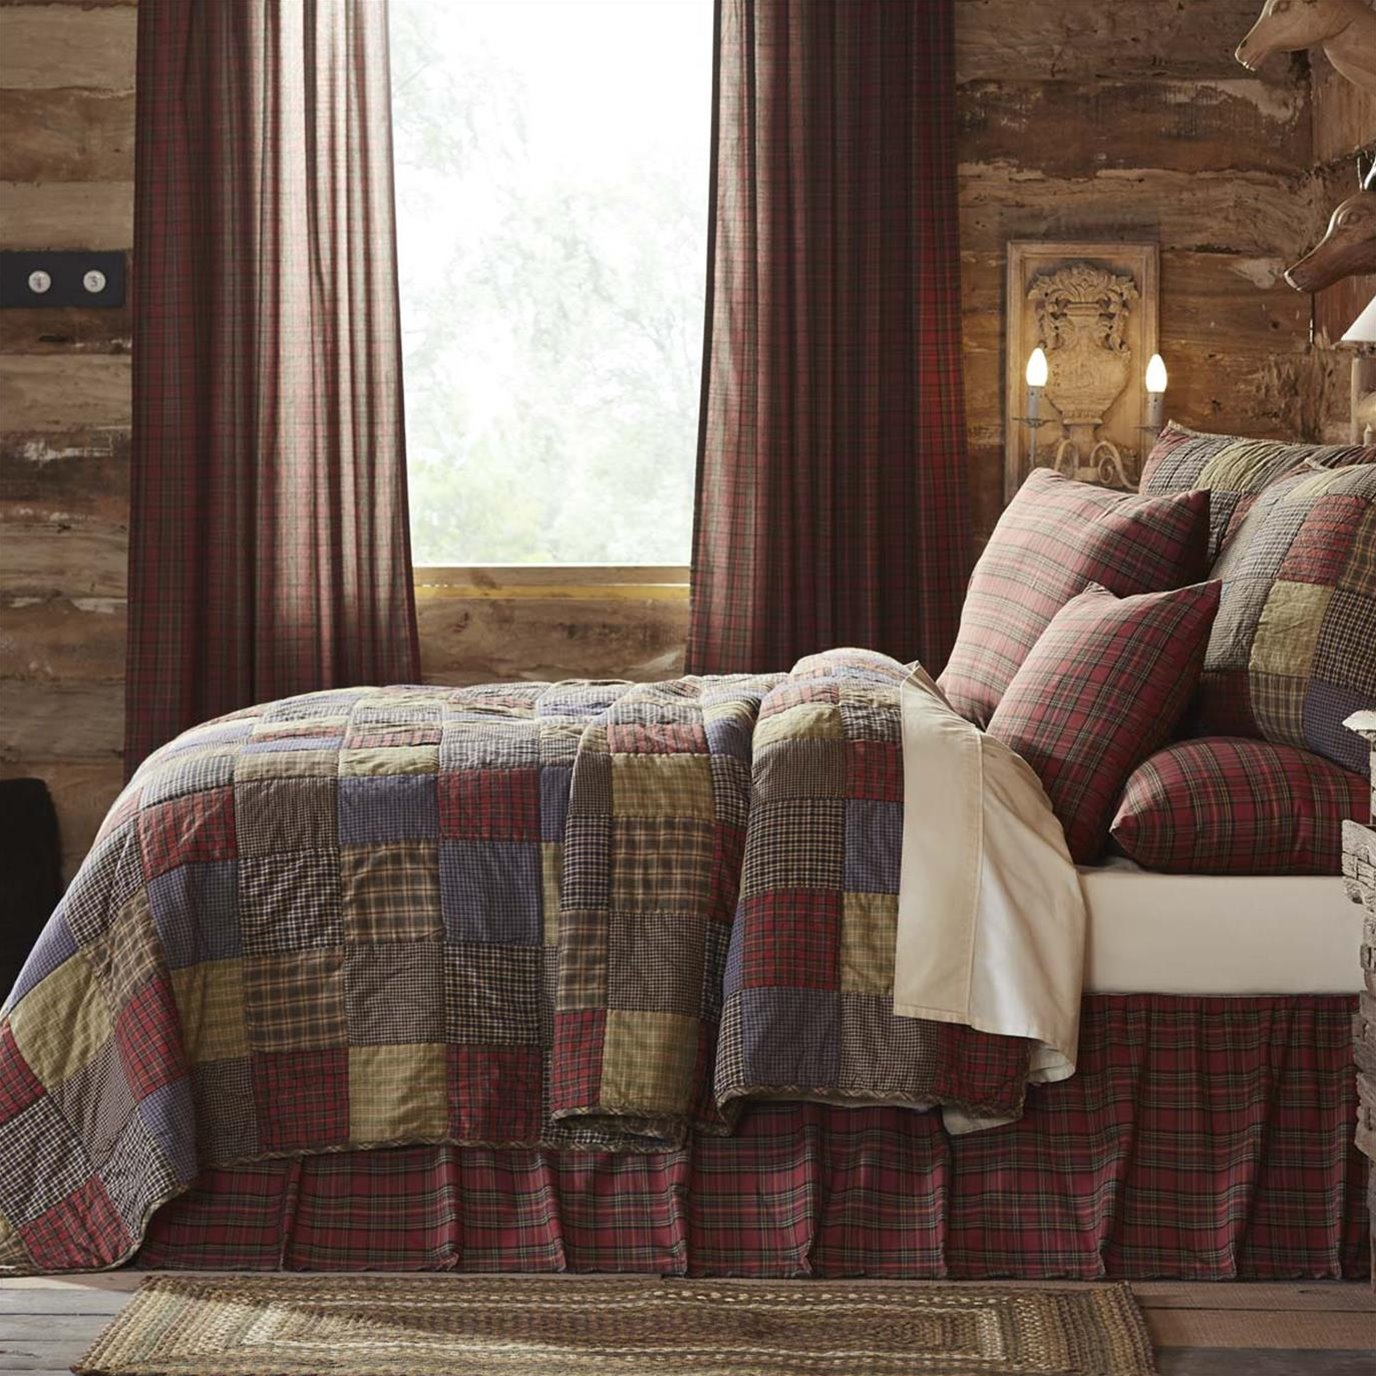 Cedar Ridge Twin Set; 1-Quilt 86x68 w/1 Sham 21x27